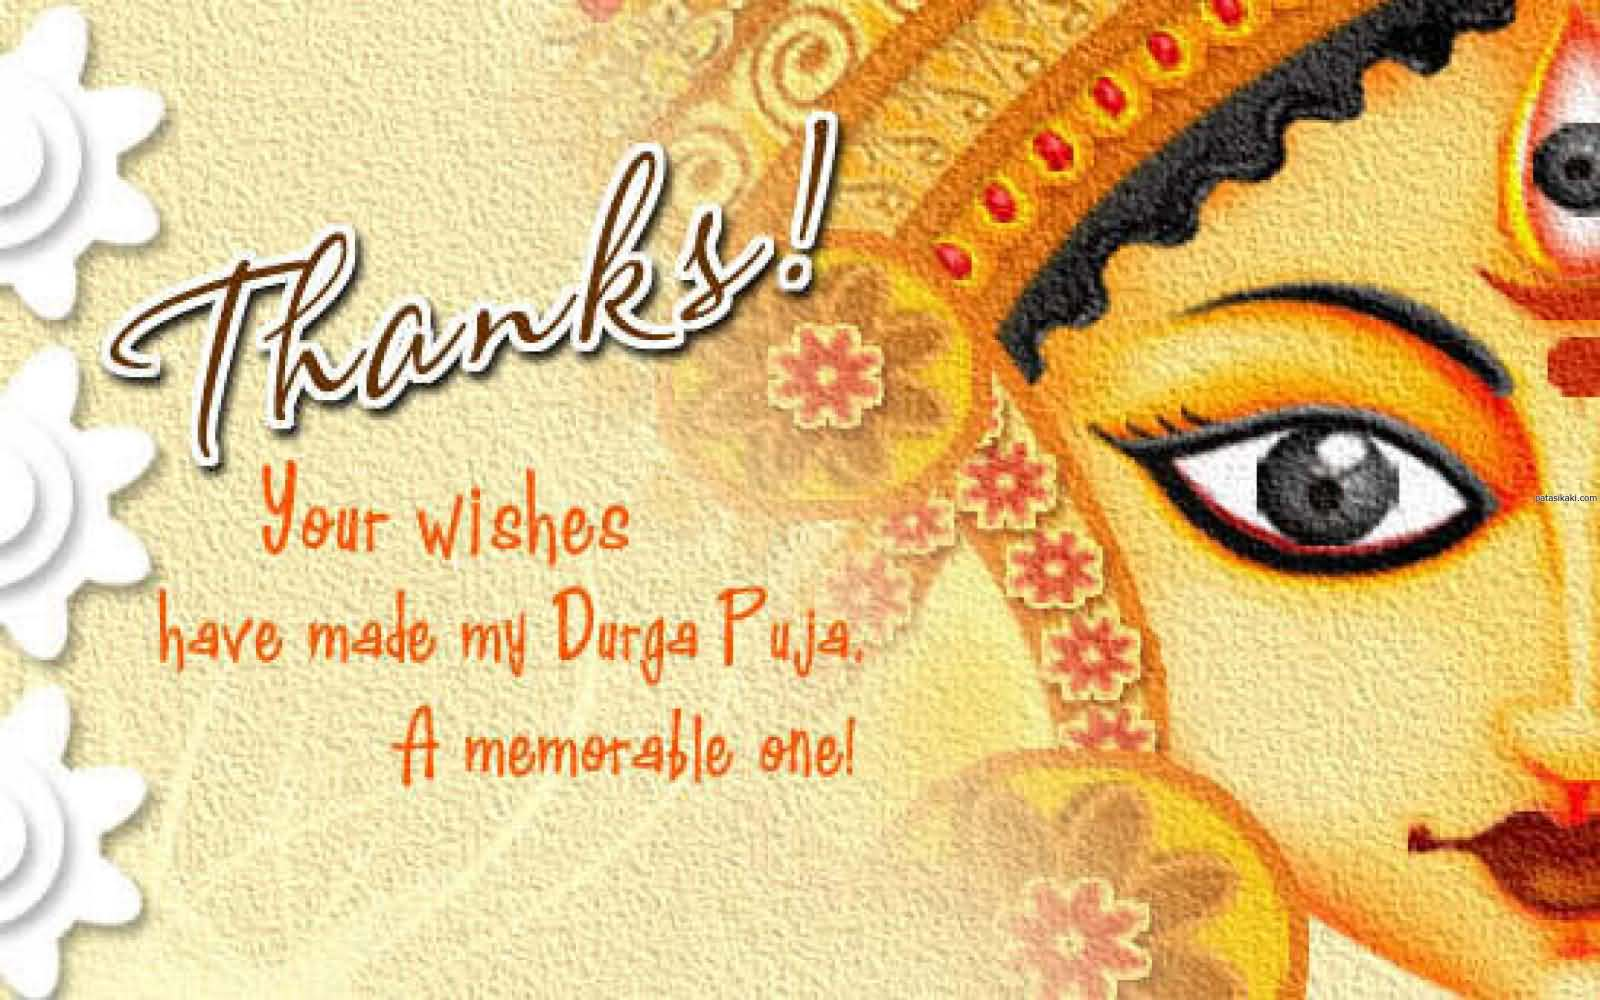 57 best durga puja wishes ideas on askideas thanks your wishes have made my durga puja a memorable one kristyandbryce Images